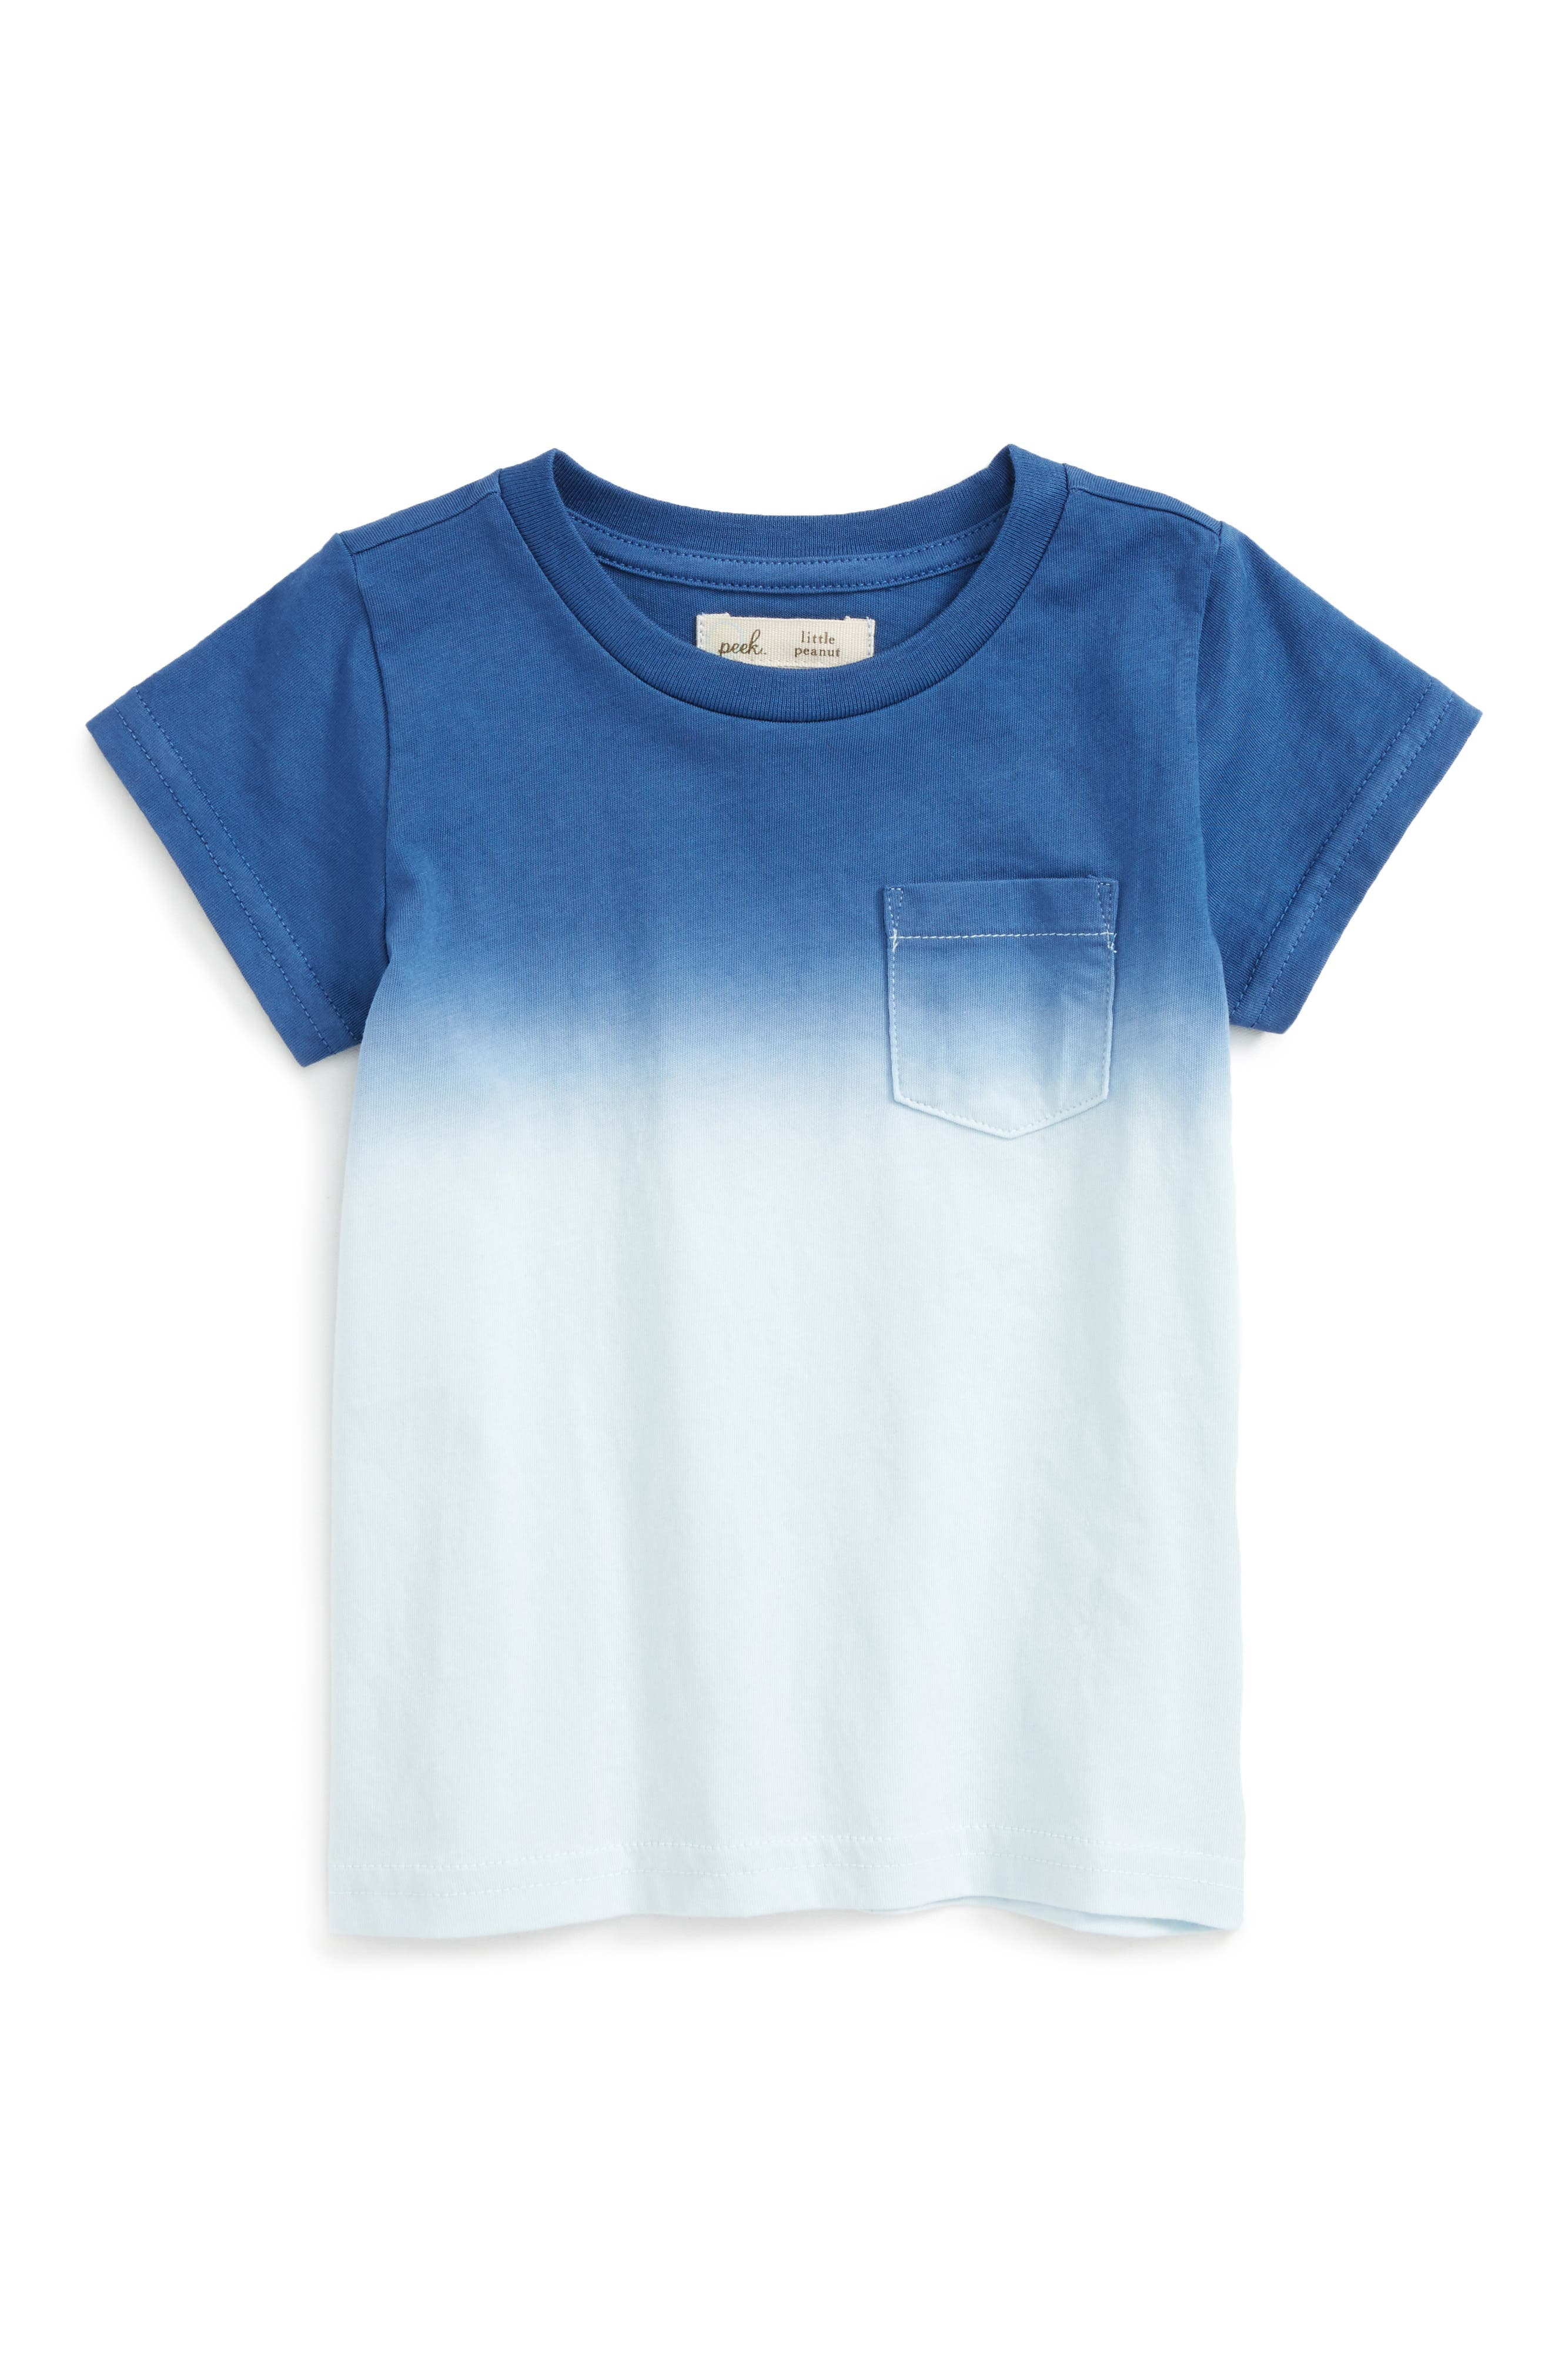 Alternate Image 1 Selected - Peek Dip Dye Pocket T-Shirt (Baby Boys)